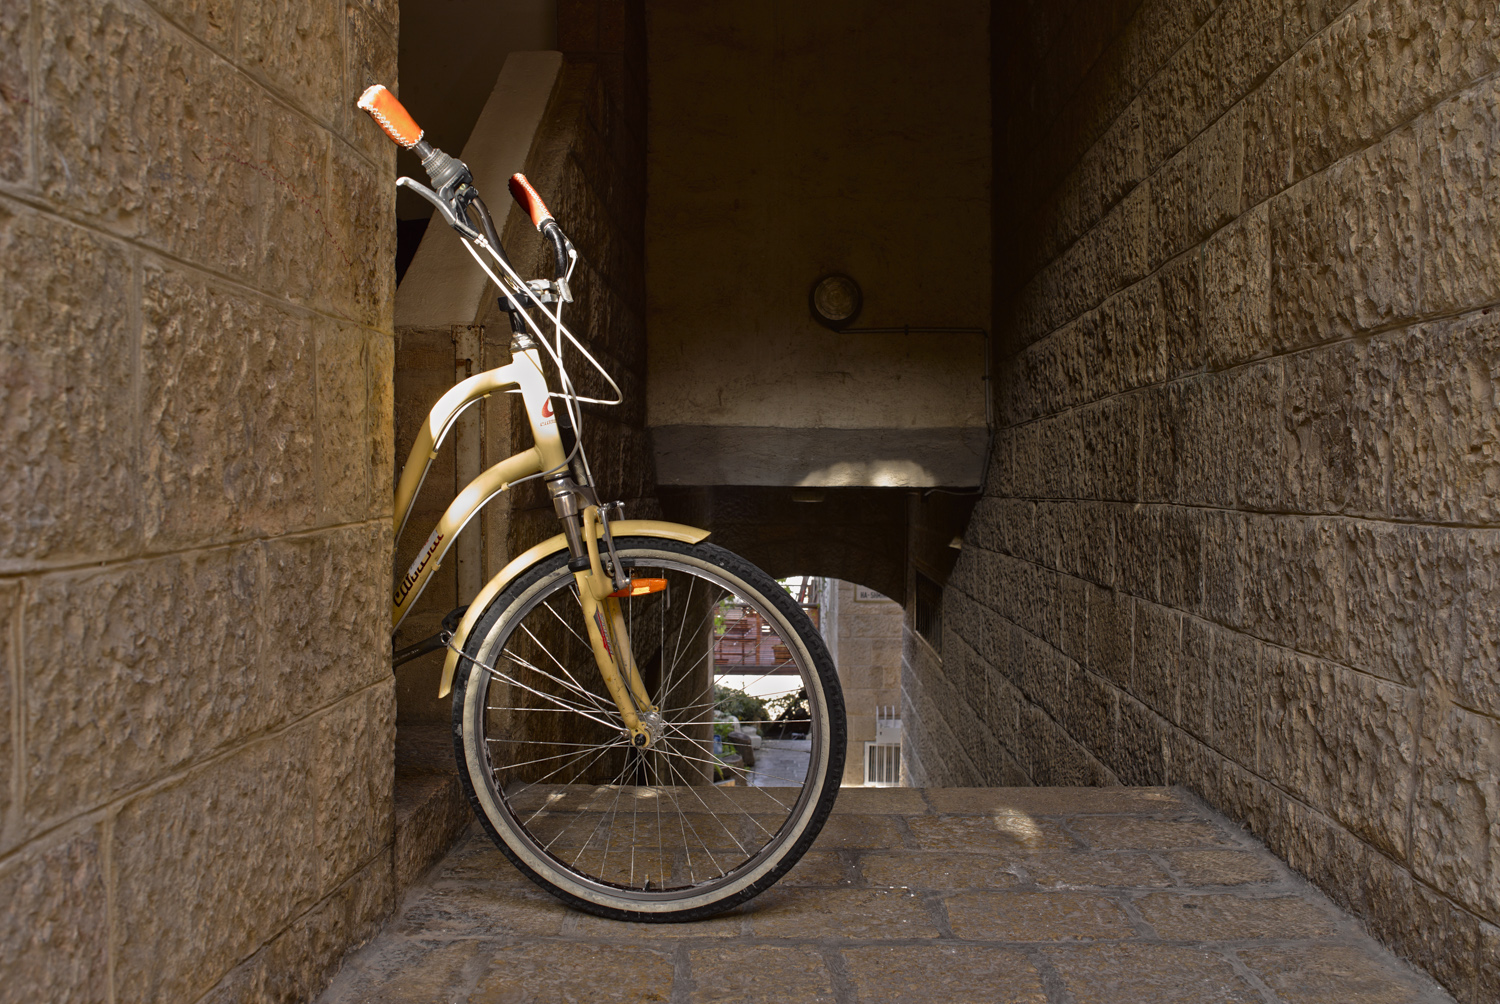 Bicycle - Jerusalem, 2014